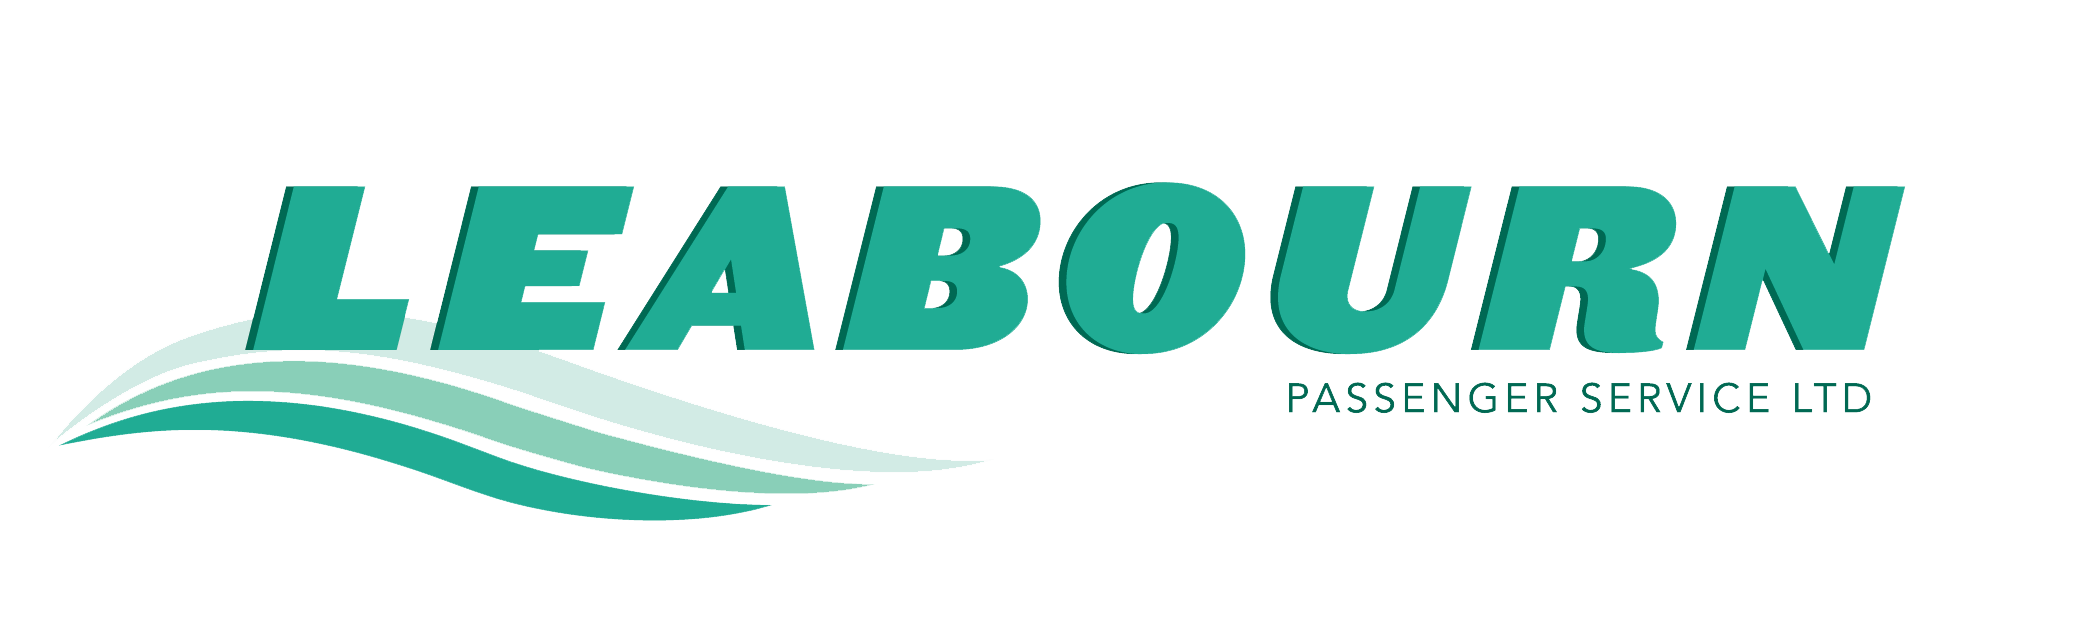 Leabourn Passenger Services